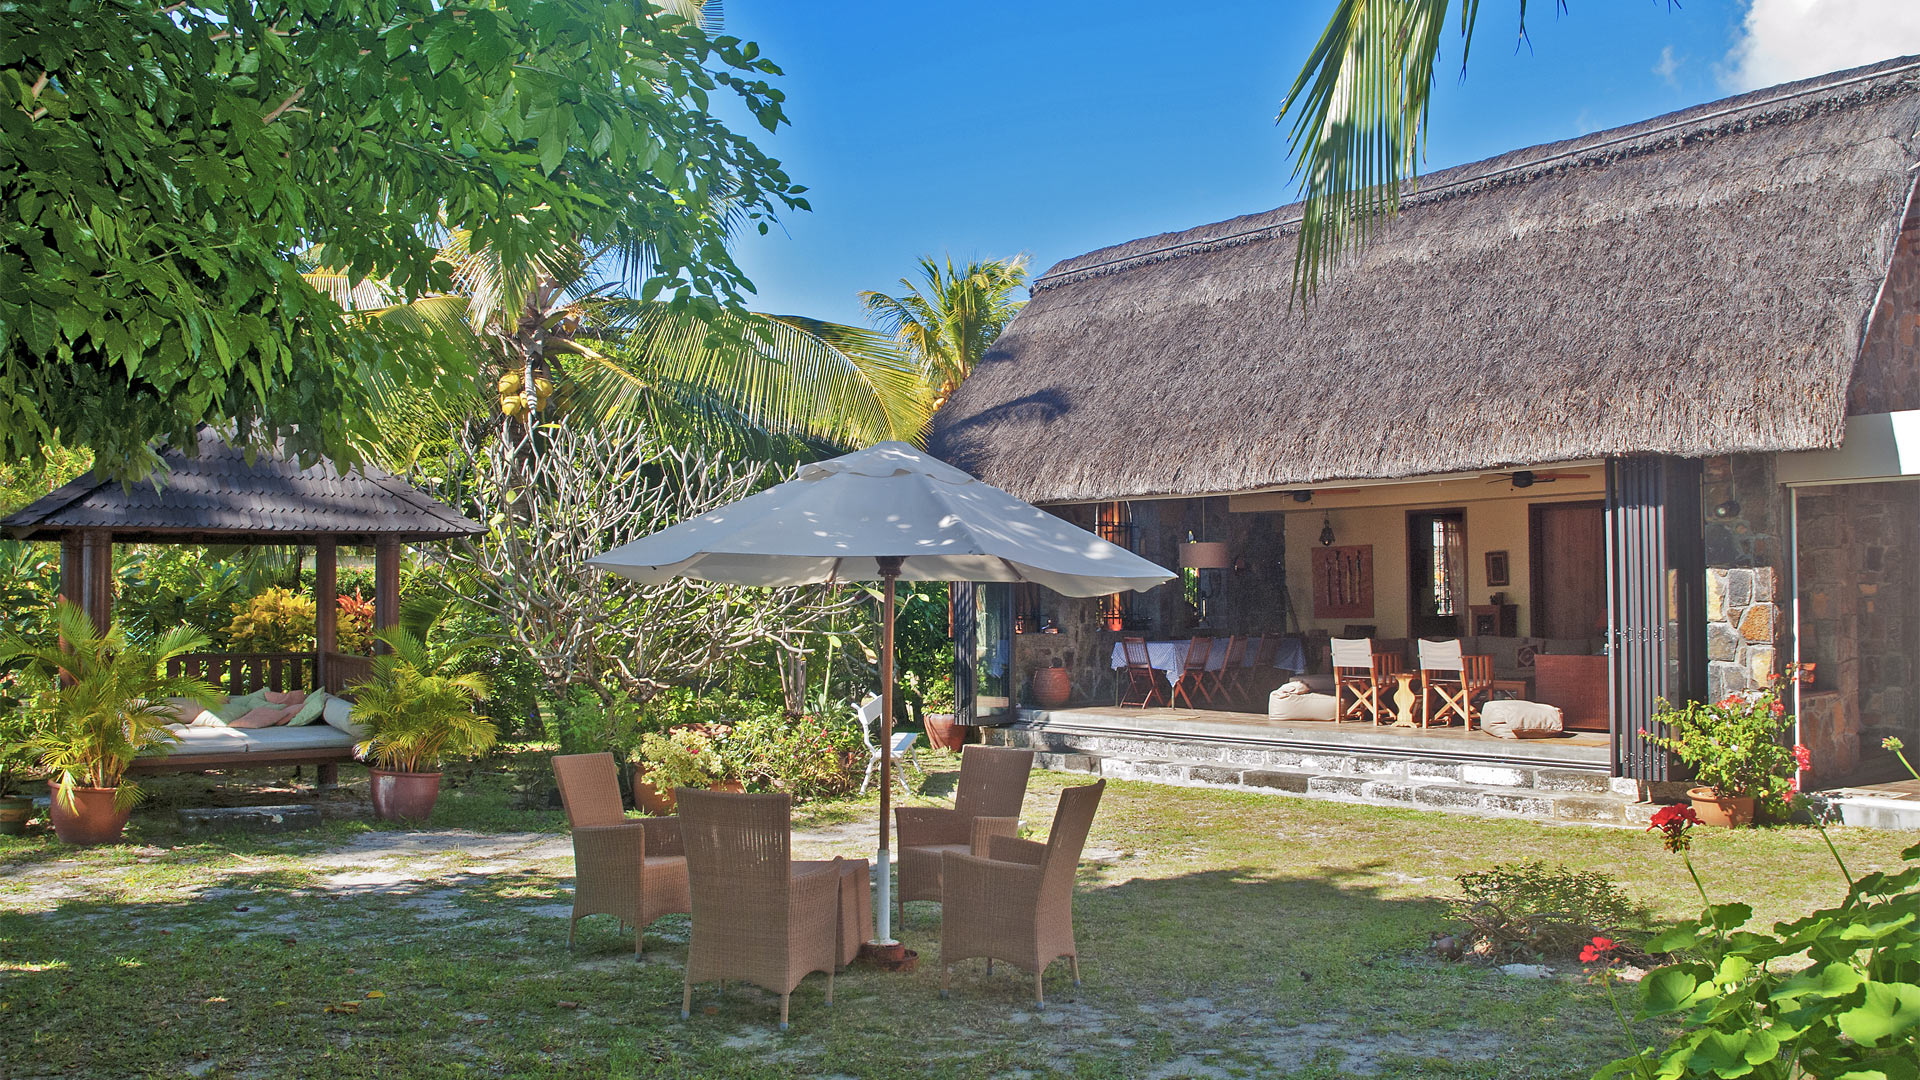 Villa bois margoz villa rental in mauritius north for Villa en bois